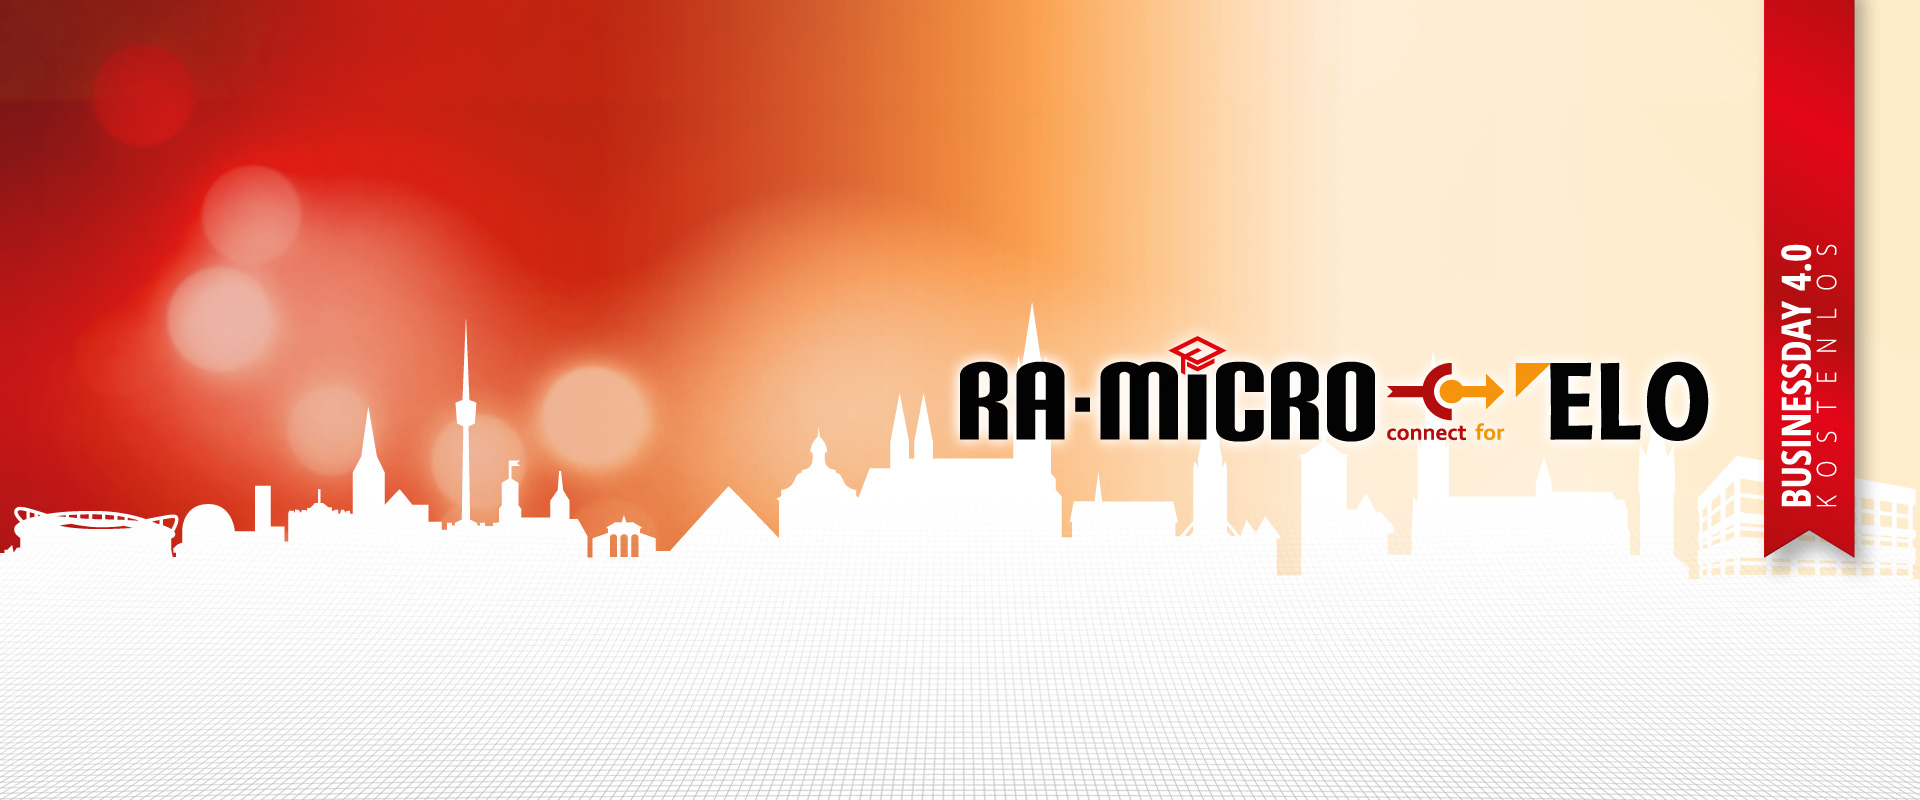 Anwalt Business Day: RA-MICRO connect for ELO